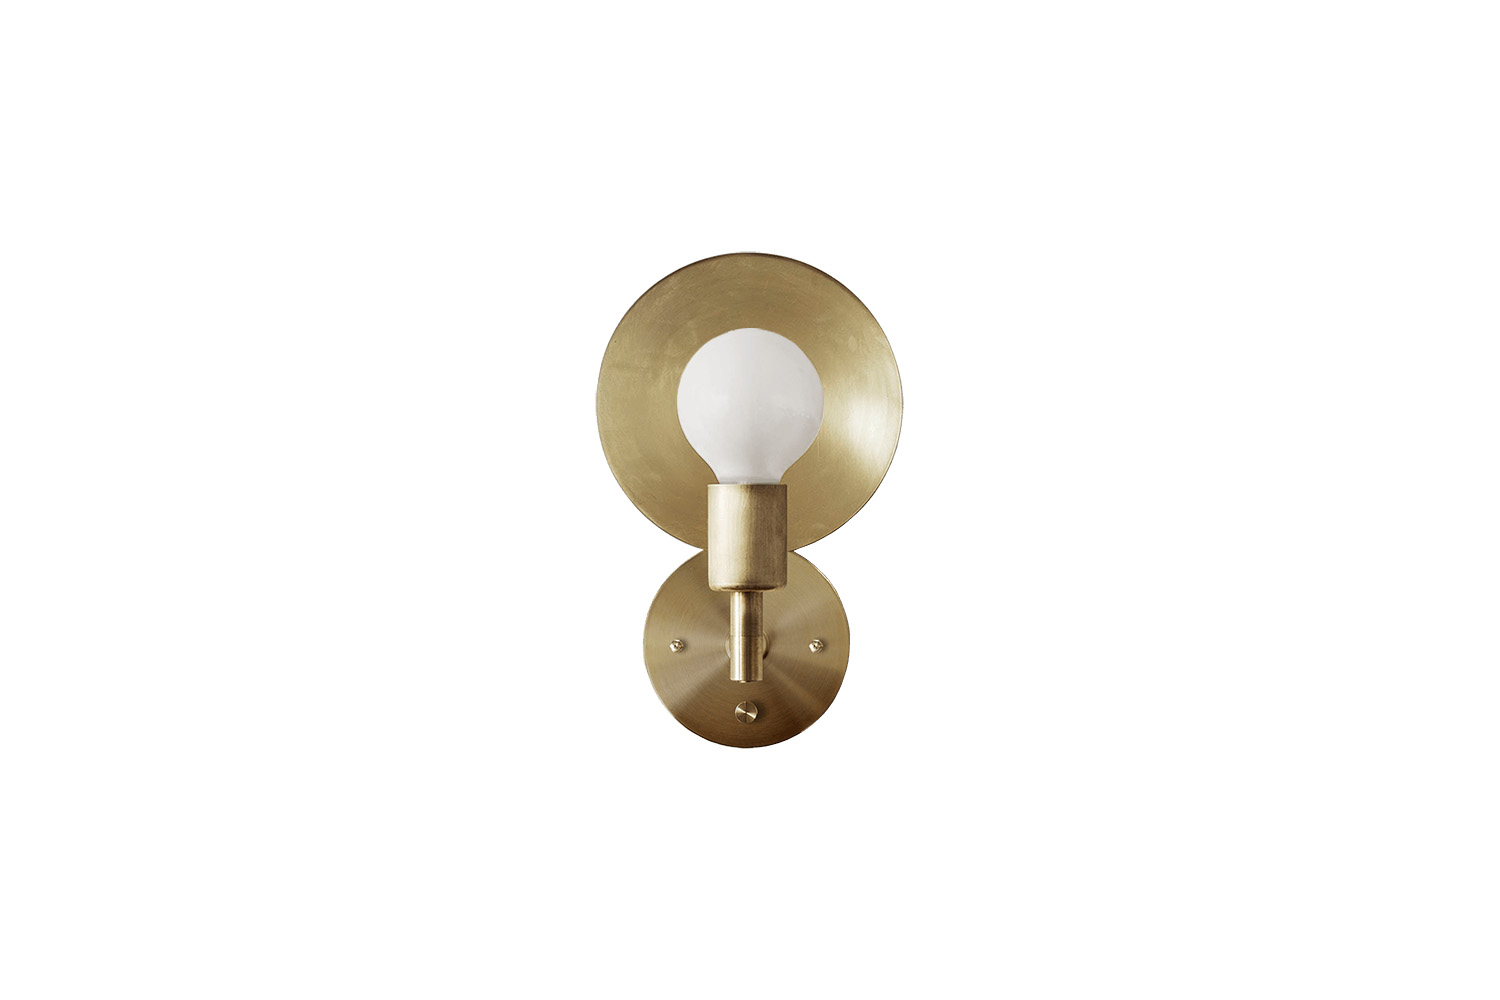 the workstead orbit sconce is \$985 at workstead. 19